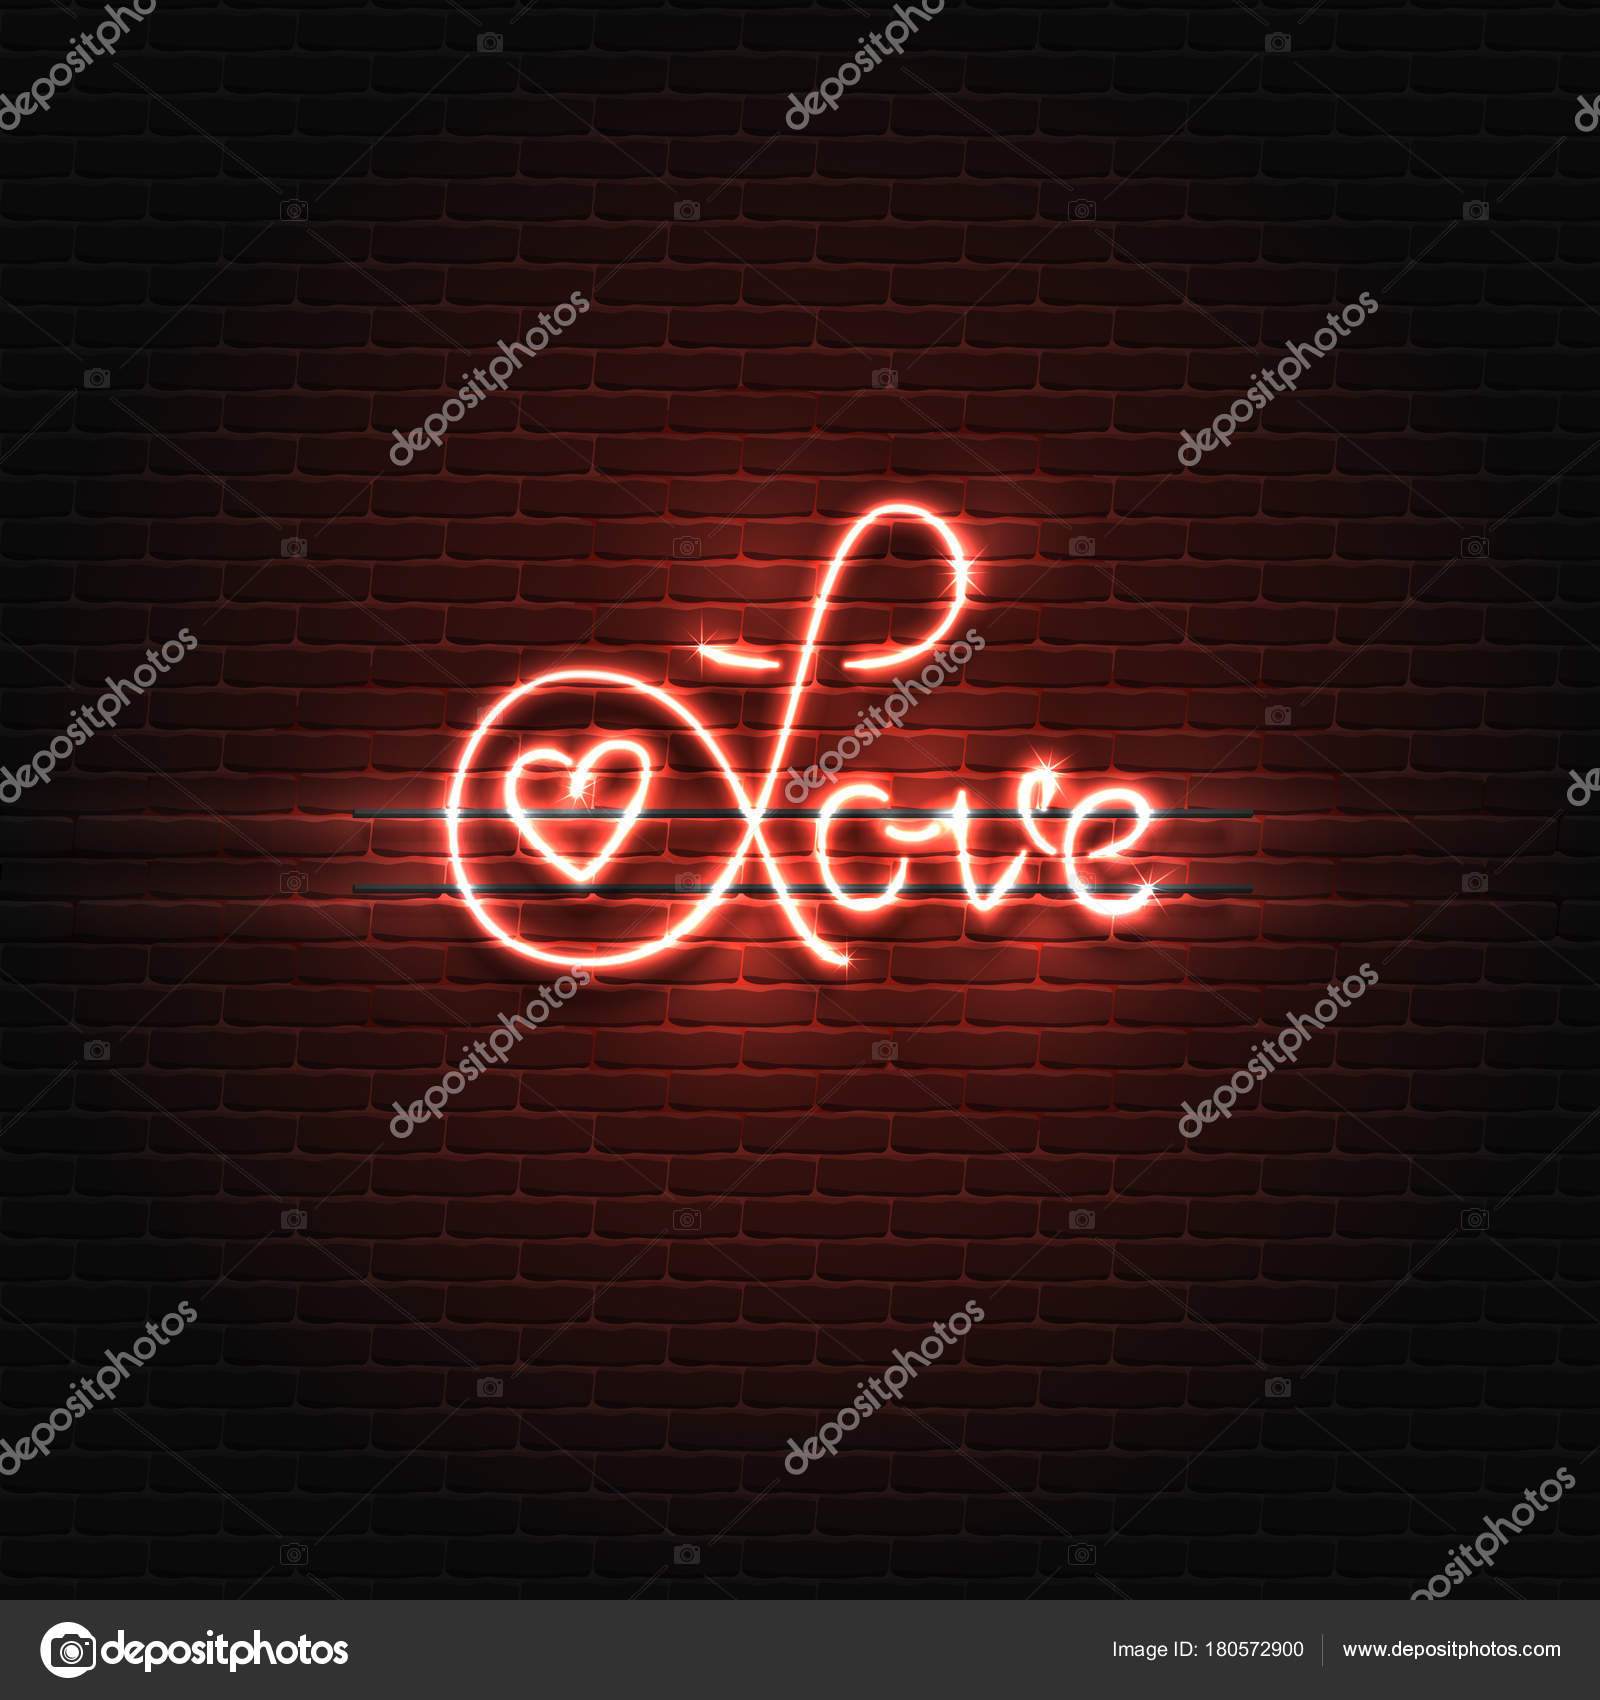 Neon sign love the word love on a brick wall background element neon sign love the word love on a brick wall background element for the buycottarizona Choice Image